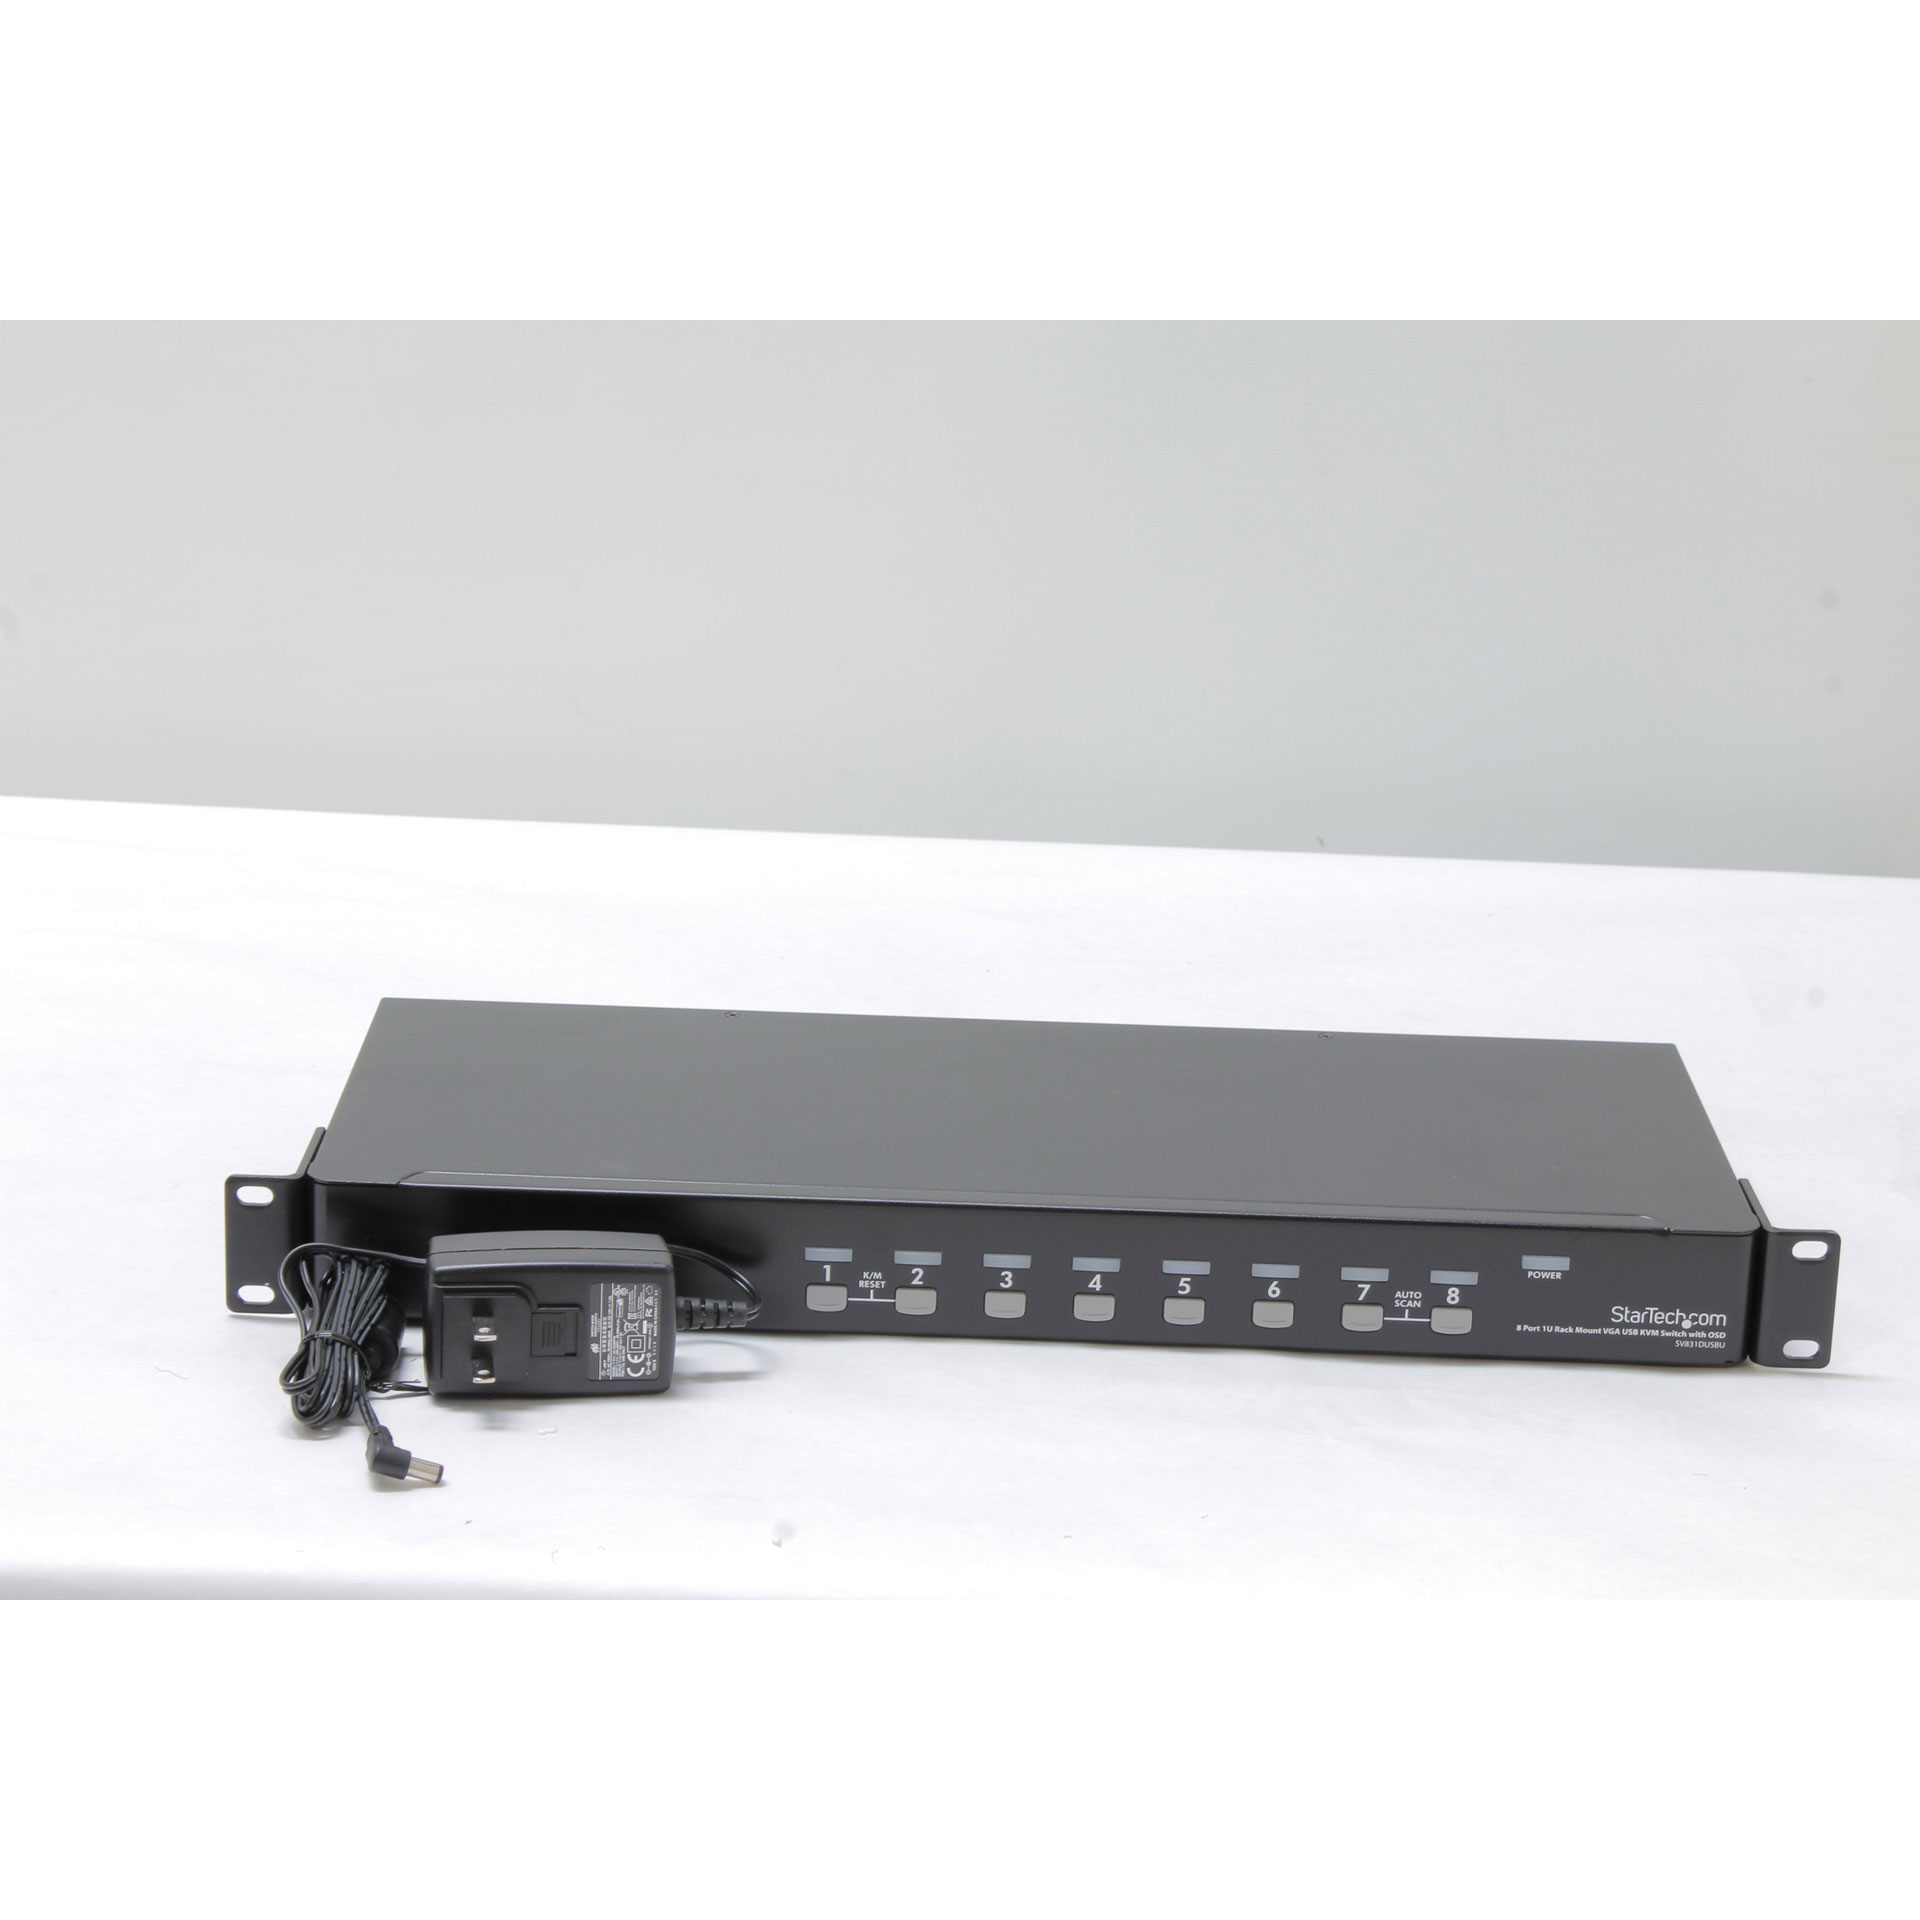 StarTech.com 8 Port 1U Rack Mount USB KVM Switch SV831DUSBU